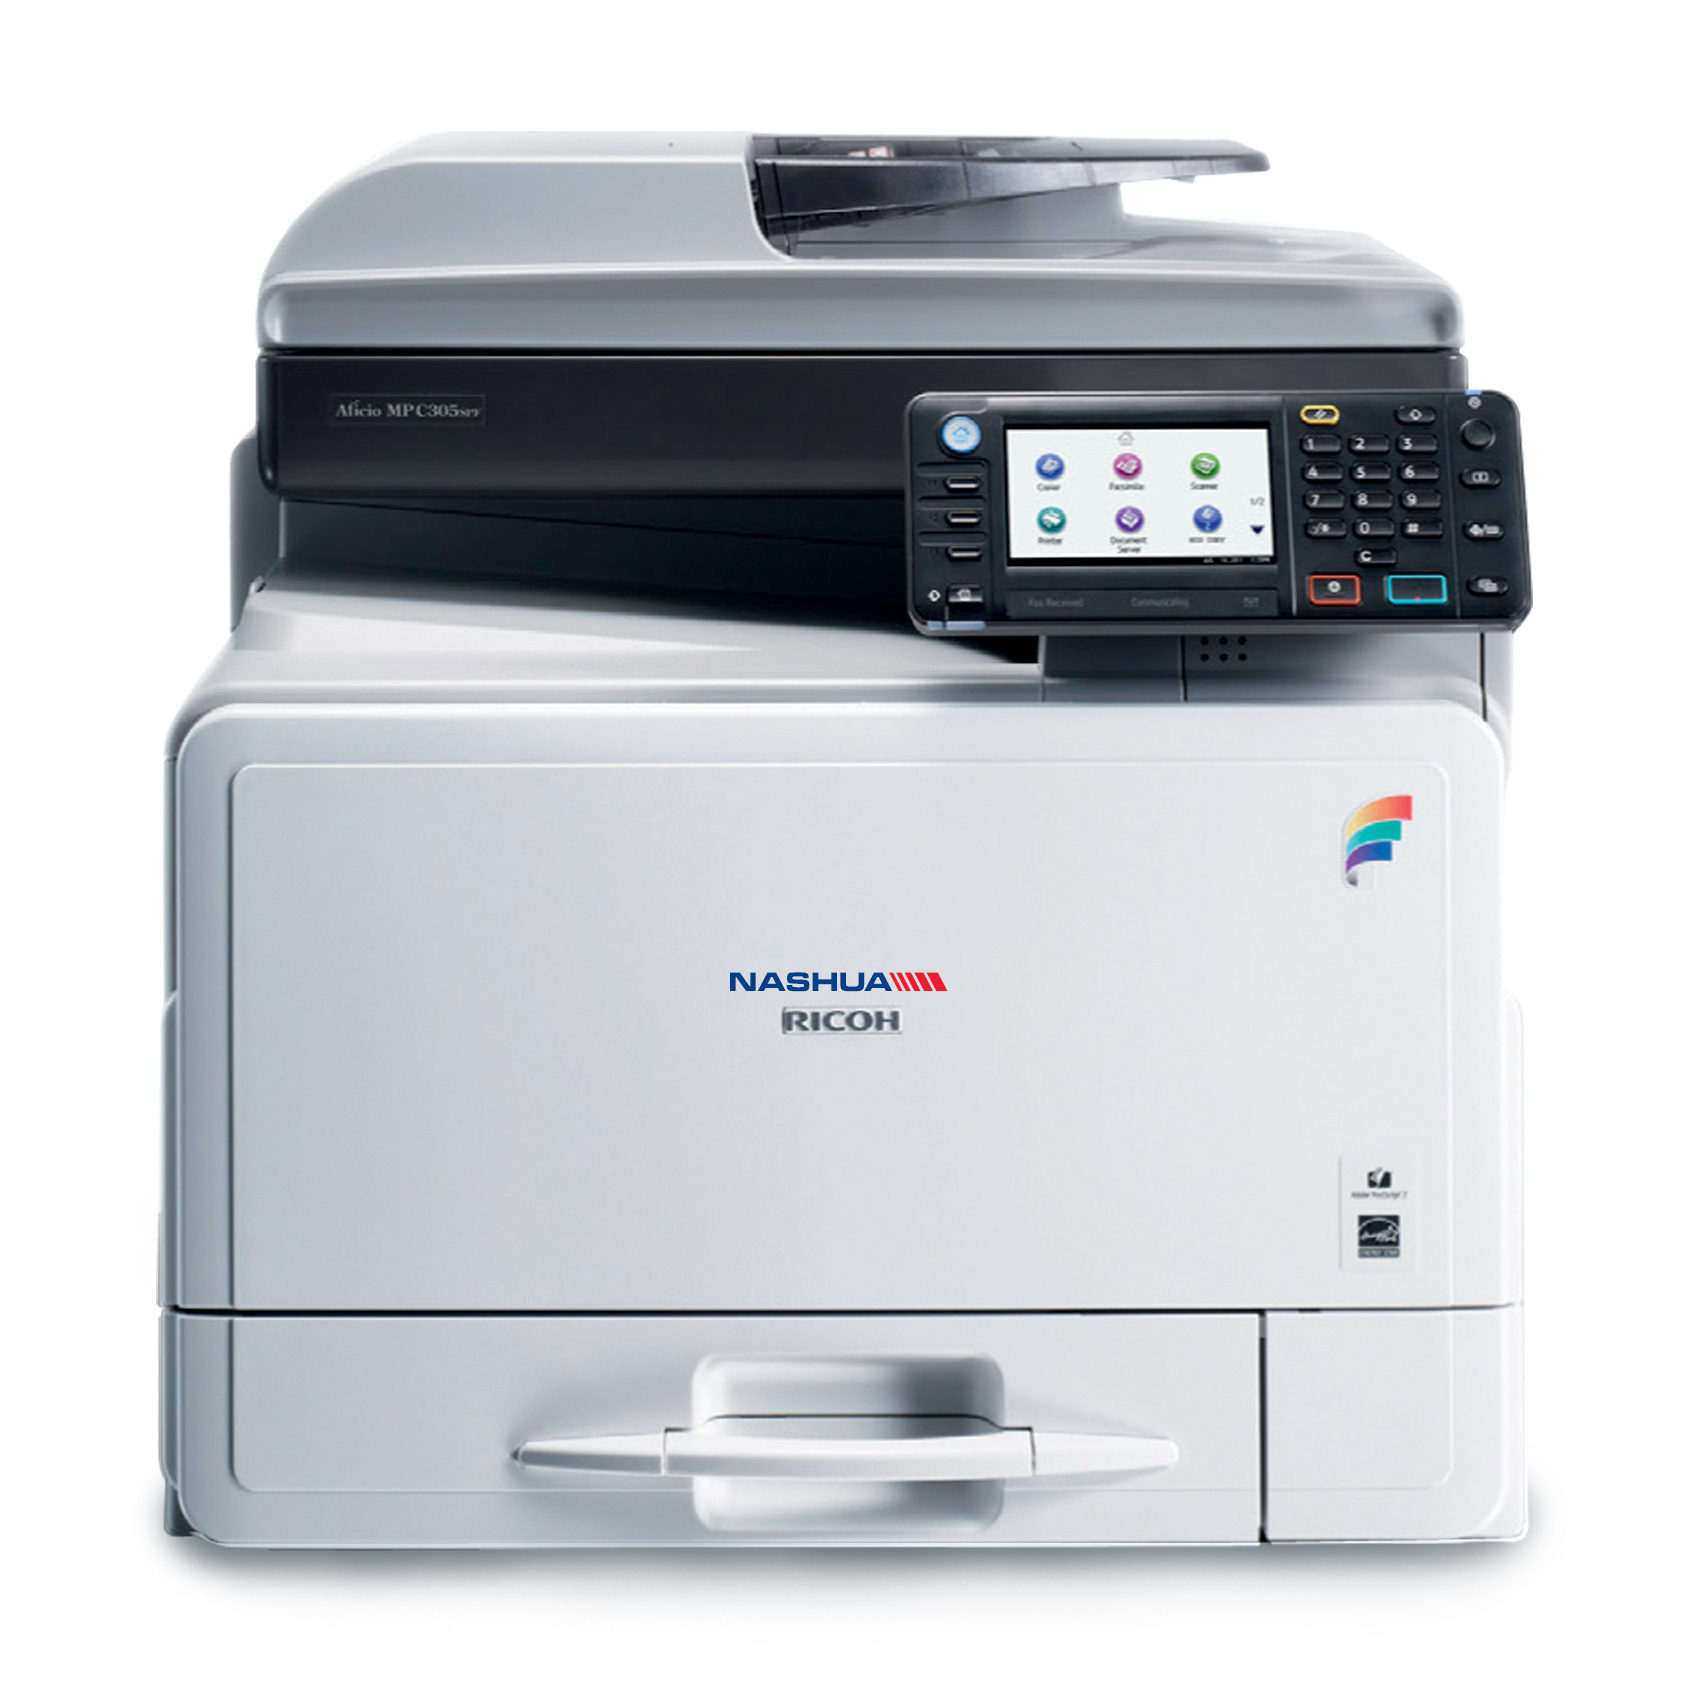 Mpc305spf Colour Mfp Nashua